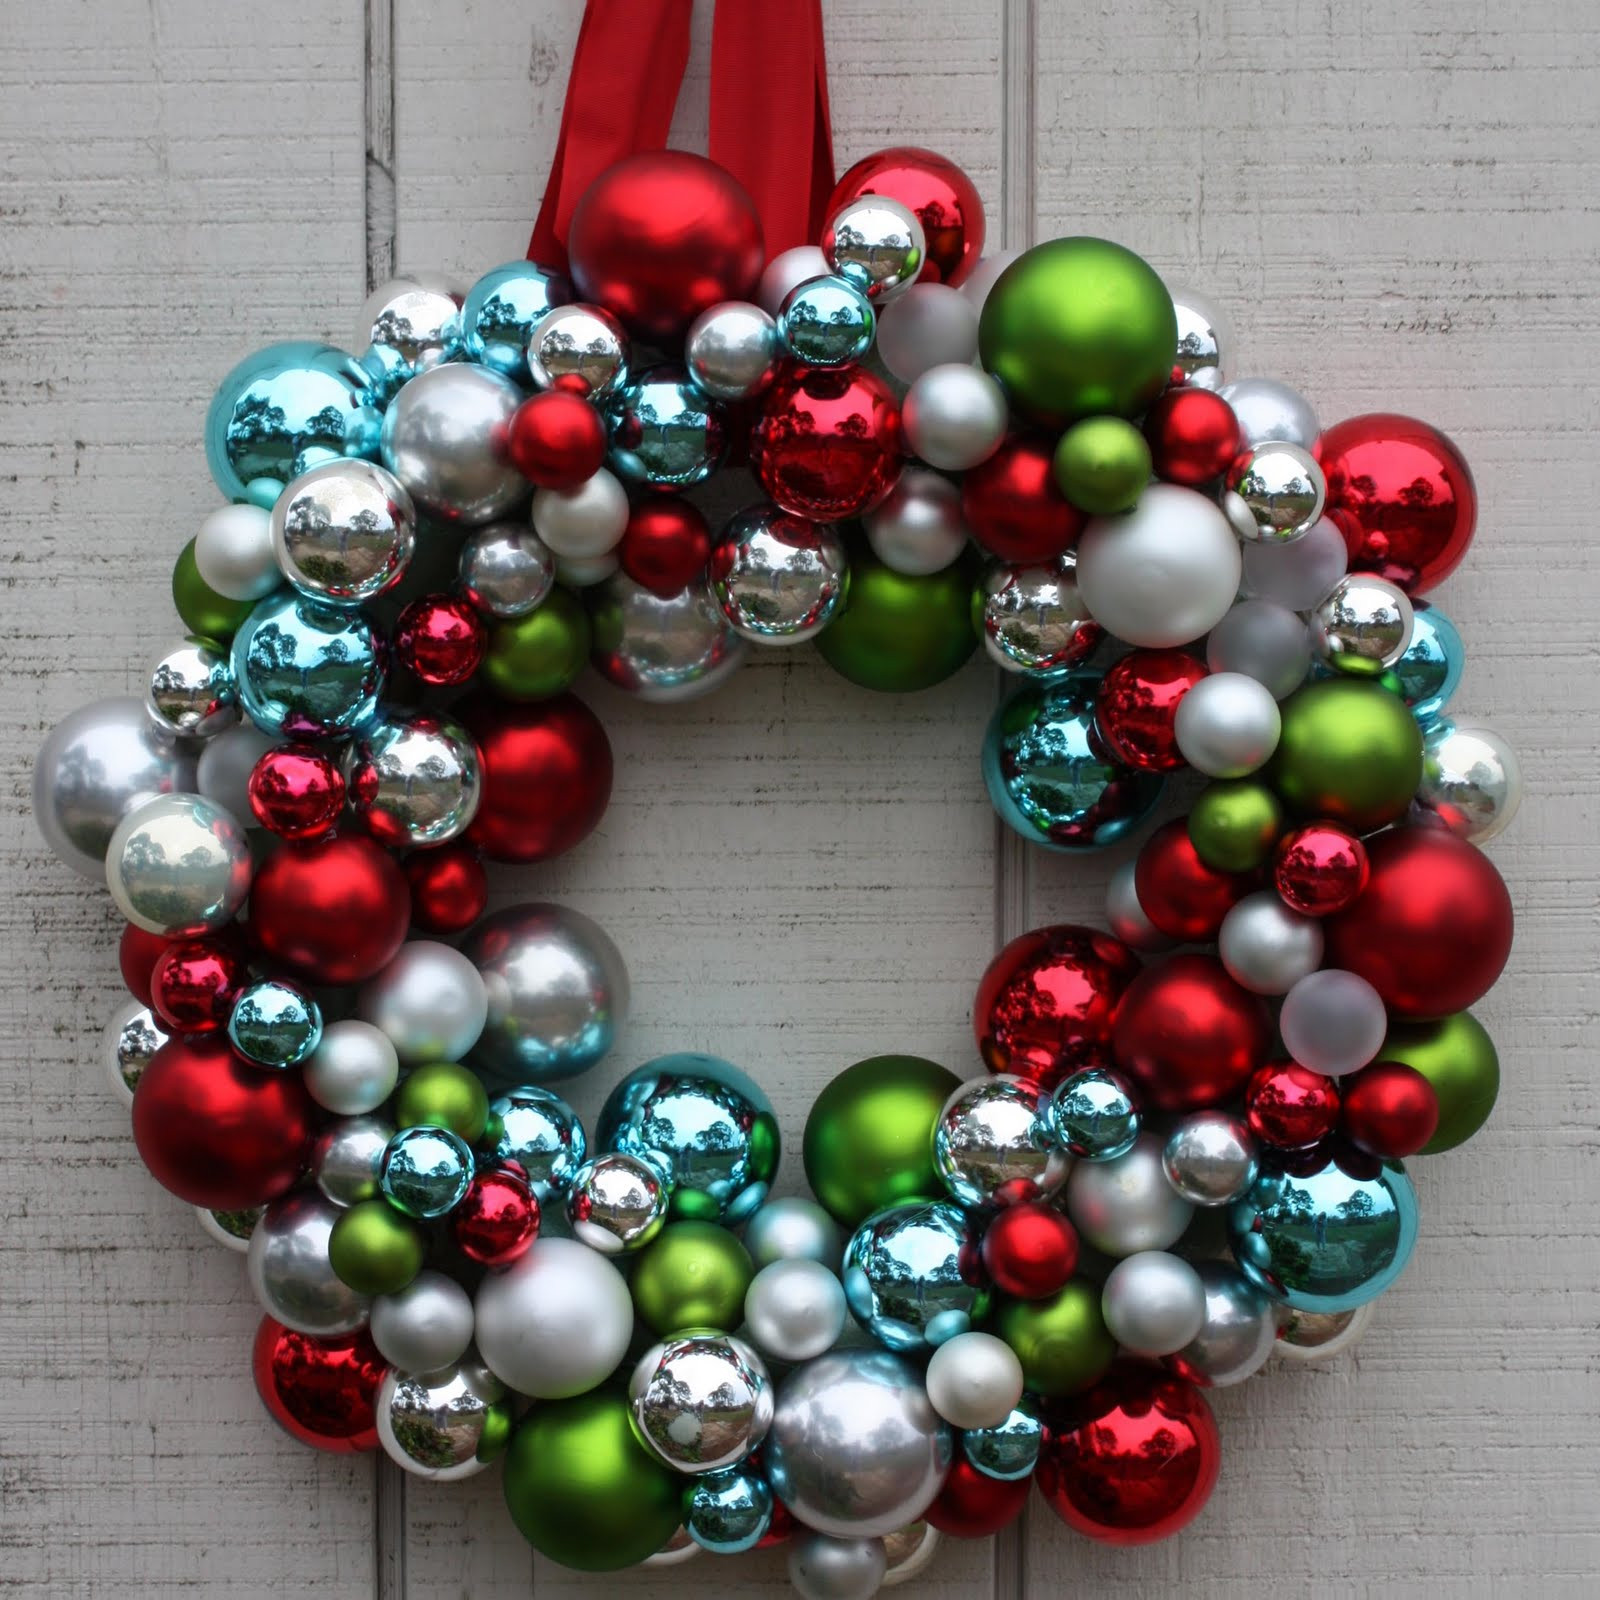 Best ideas about DIY Ornament Wreath . Save or Pin Christmas Ornament Wreath Now.